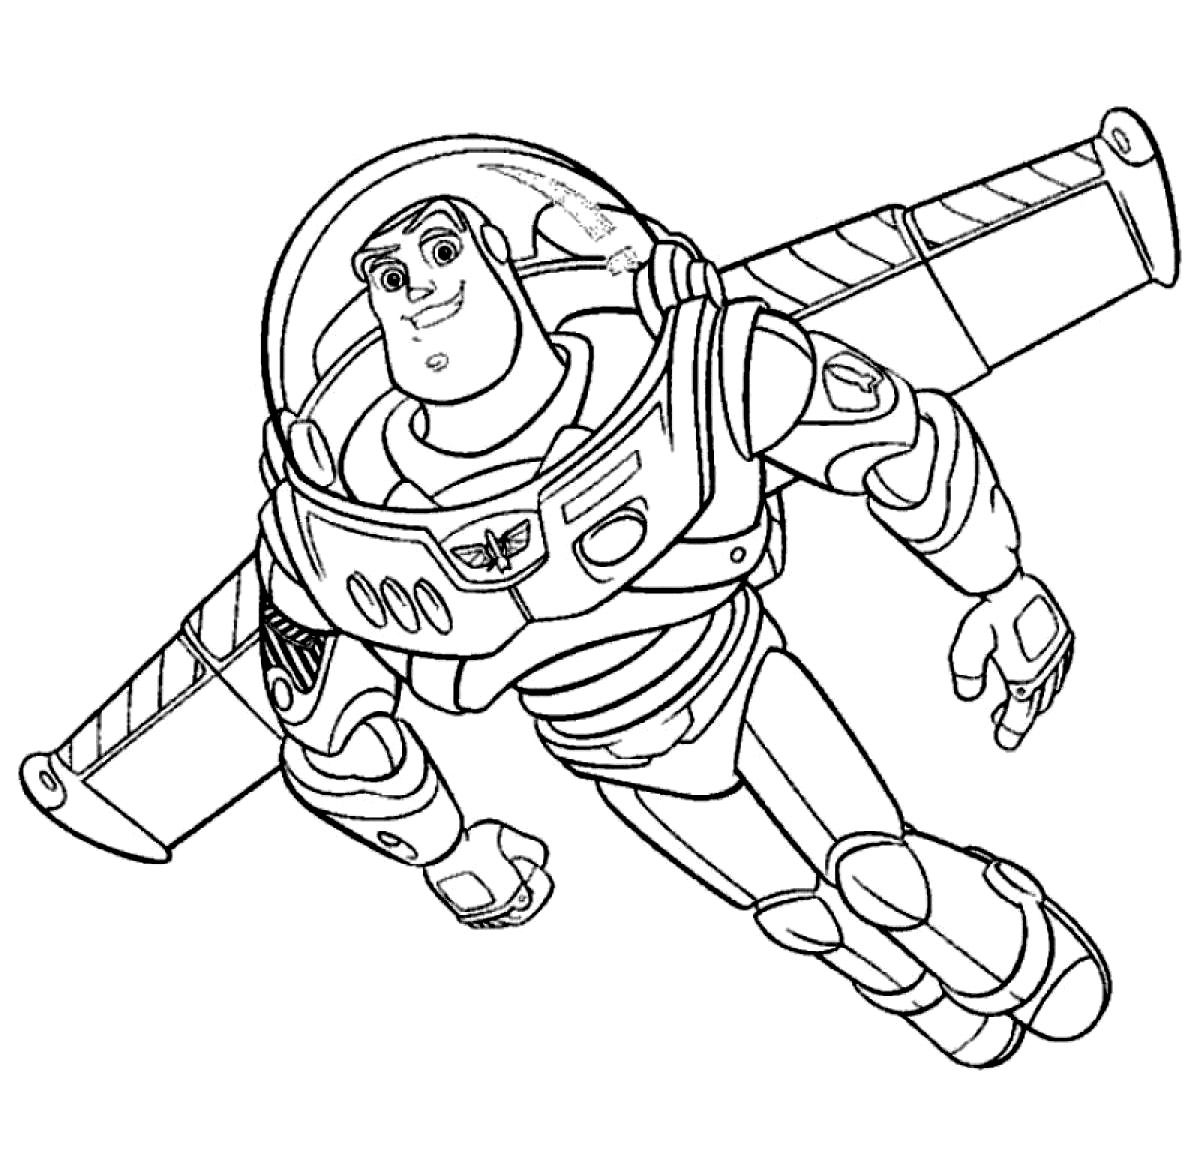 buzz lightyear coloring pages printable - Buzz Lightyear Colouring Pages